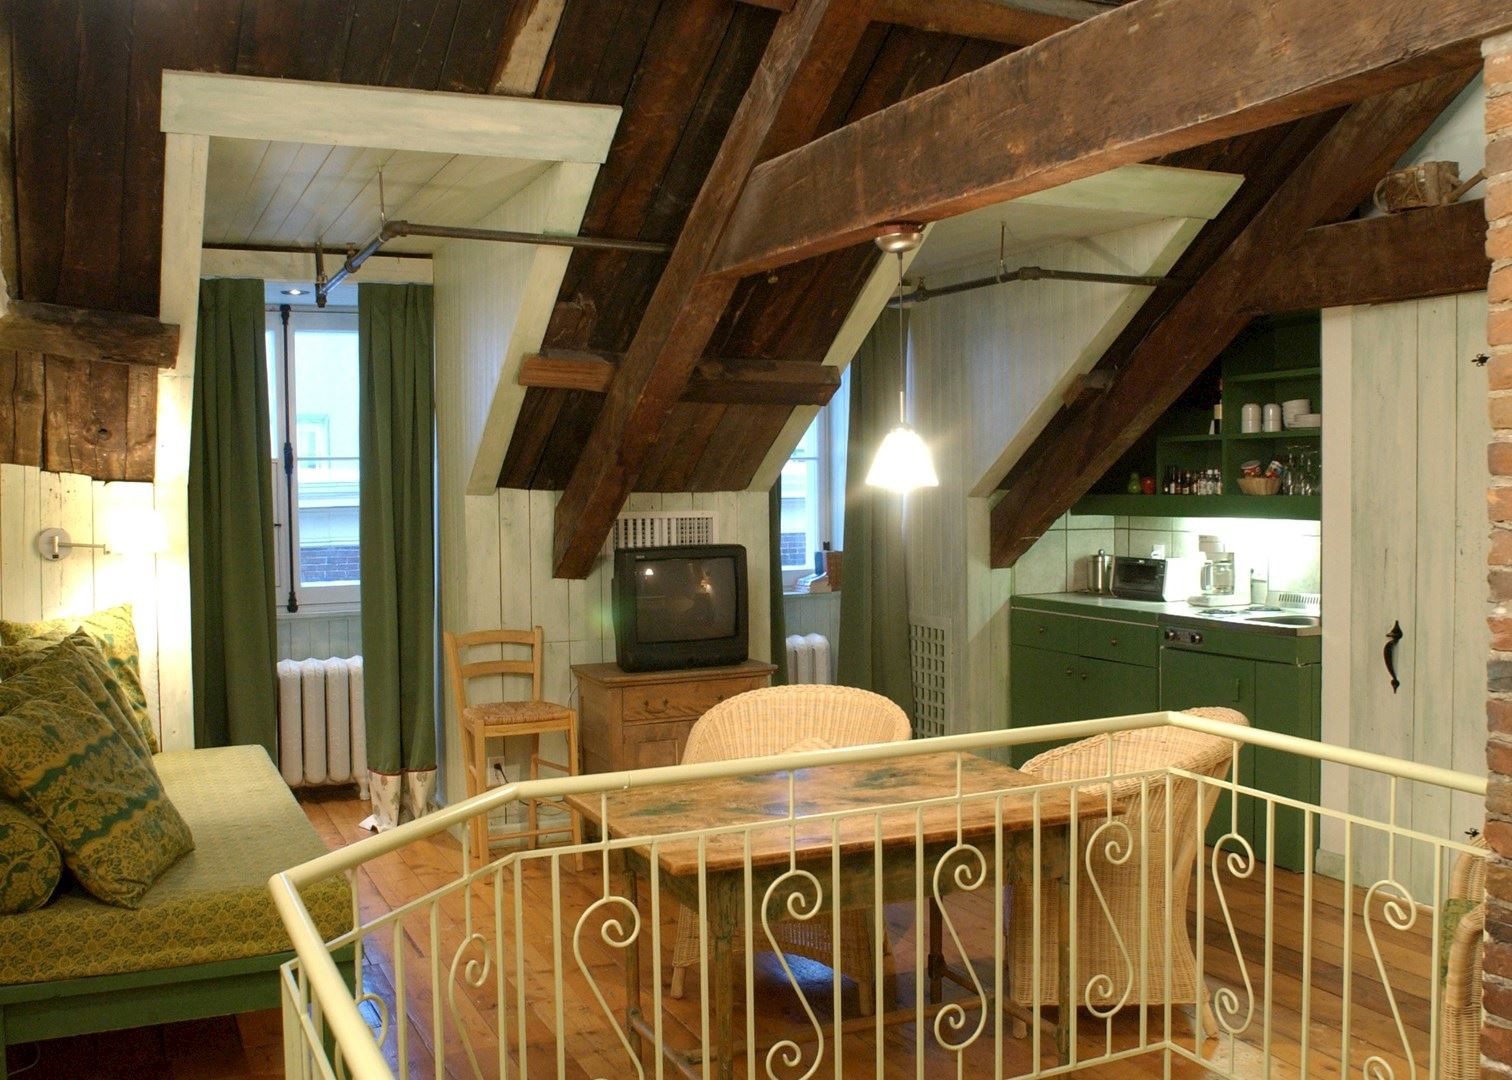 Auberge saint antoine qu bec city hotels audley travel for Auberge le jardin antoine